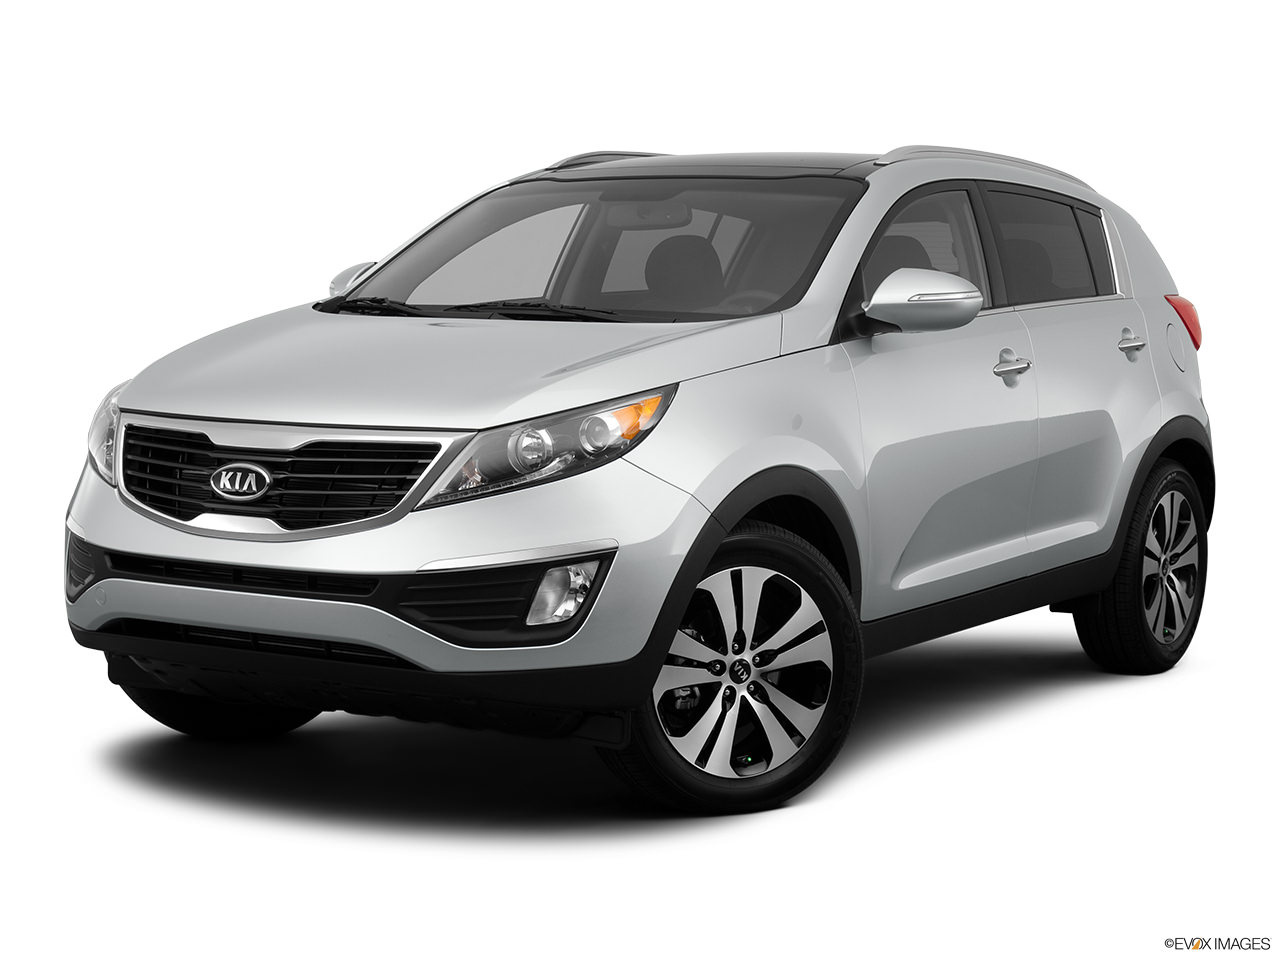 A Buyer's Guide To The 2012 Kia Sportage